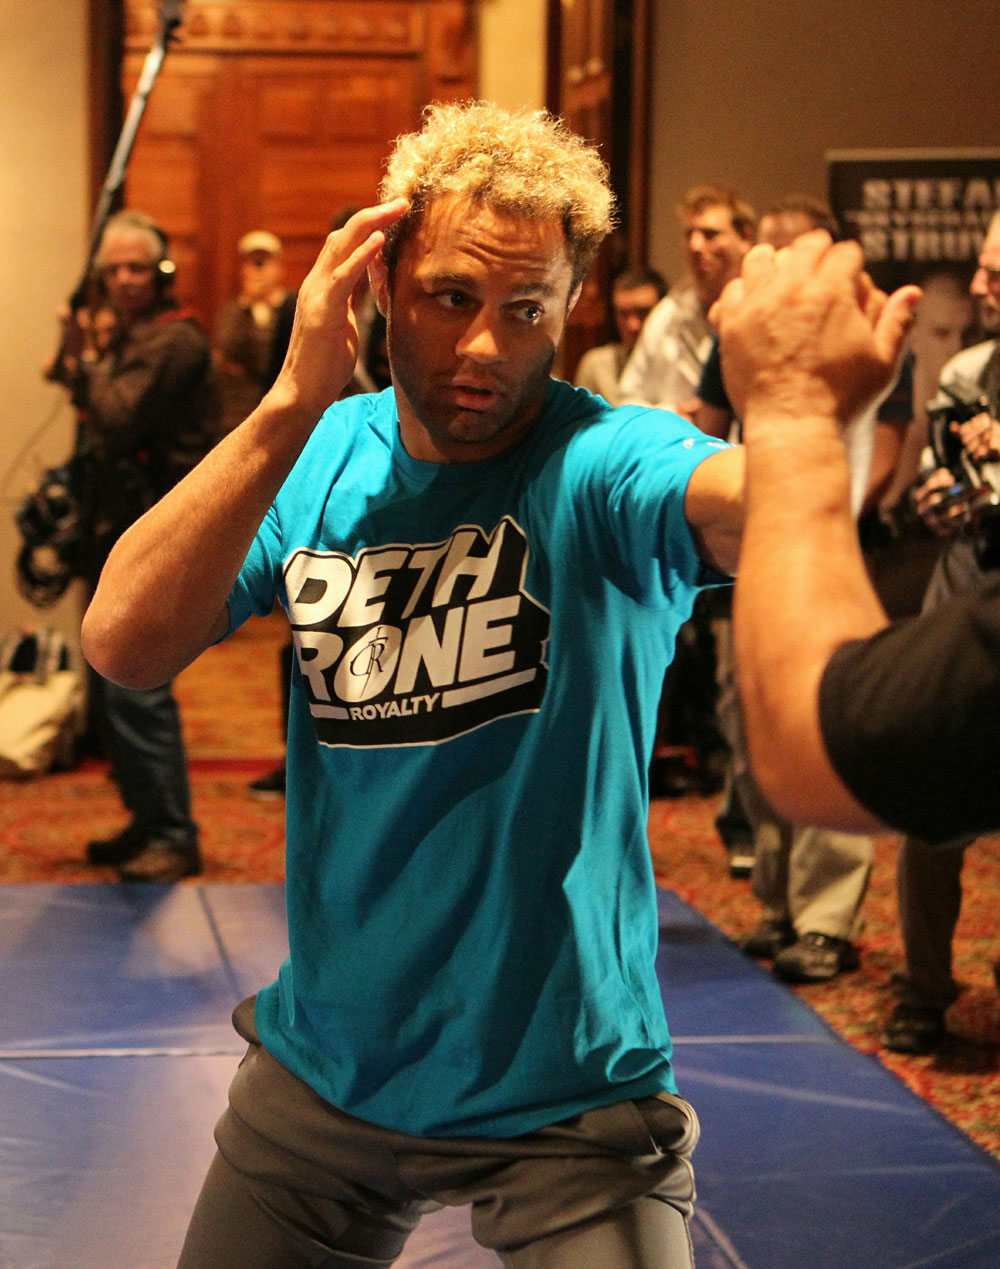 Josh Koscheck trains at the UFC 124 open workouts at the Marriott Chateau Champlain in on December 8, 2010 in Montreal, Quebec, Canada.